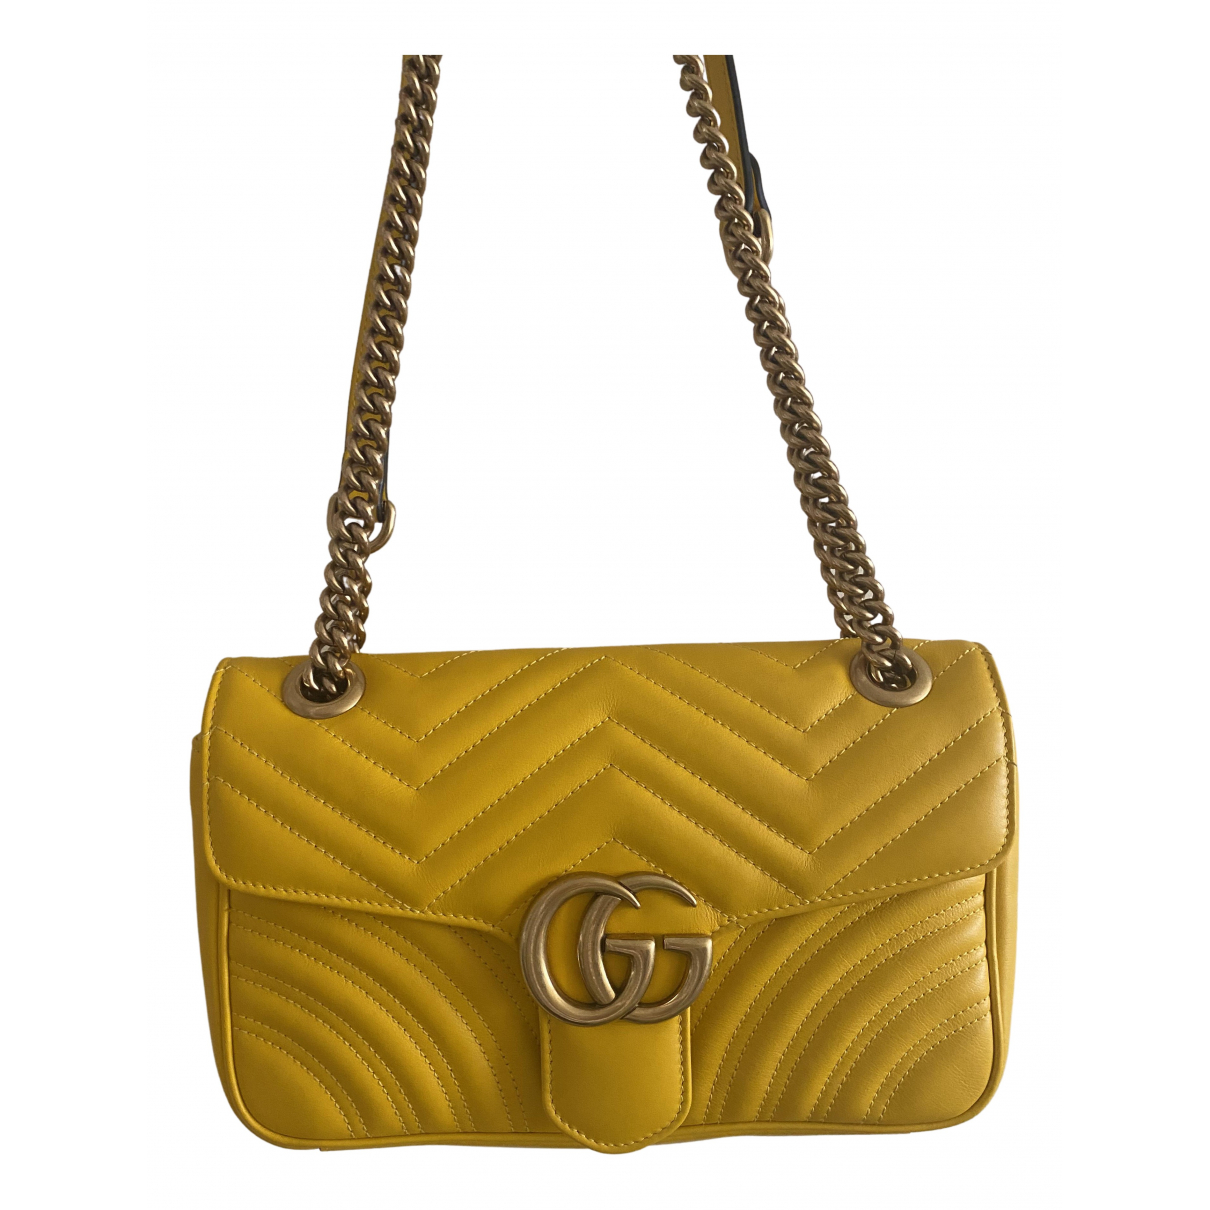 Gucci Marmont Yellow Leather handbag for Women N